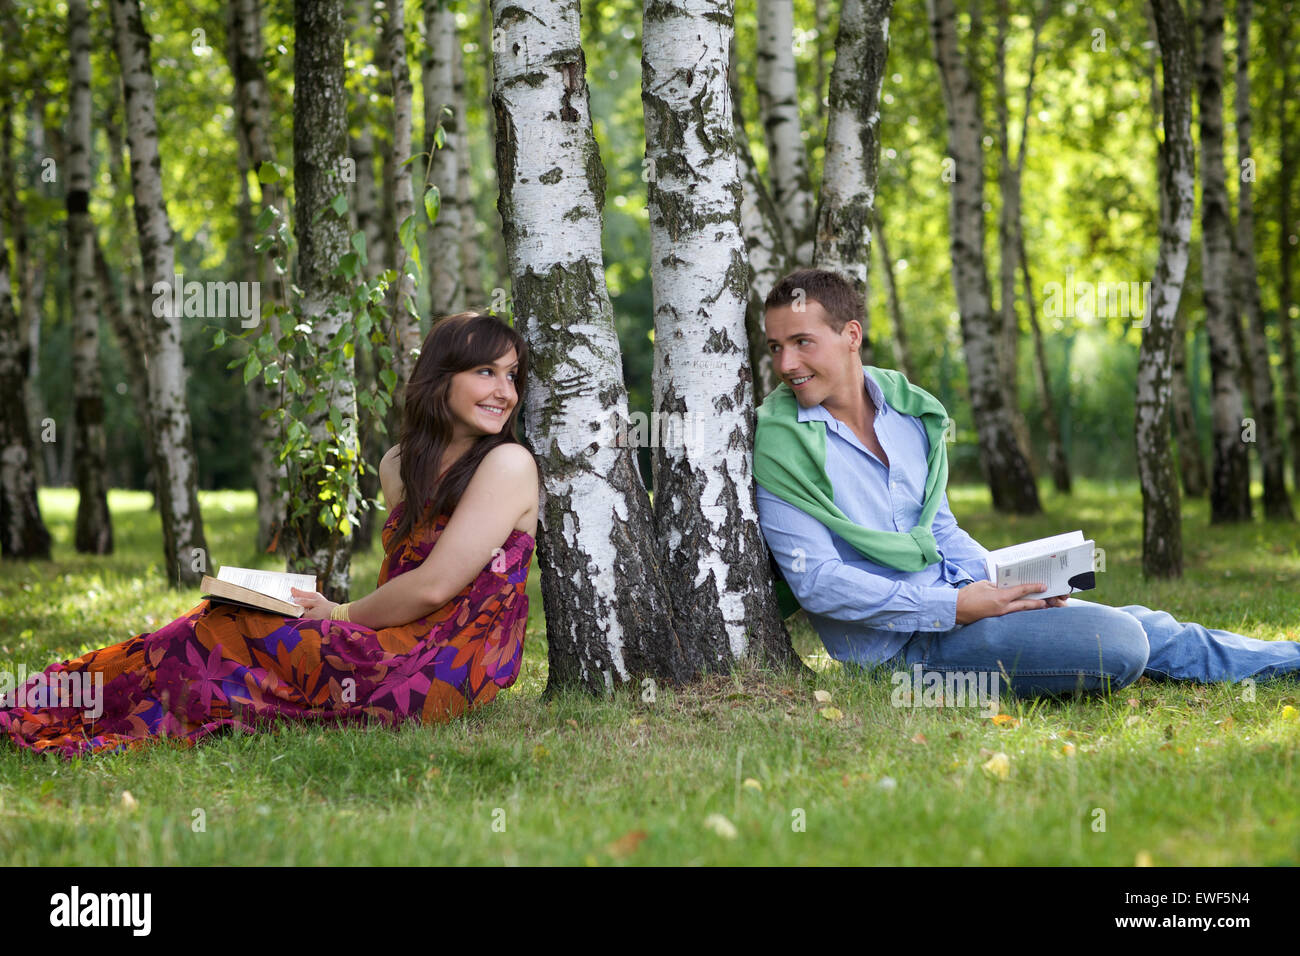 Young couple holding books in park by tree trunk, looking at each other Stock Photo